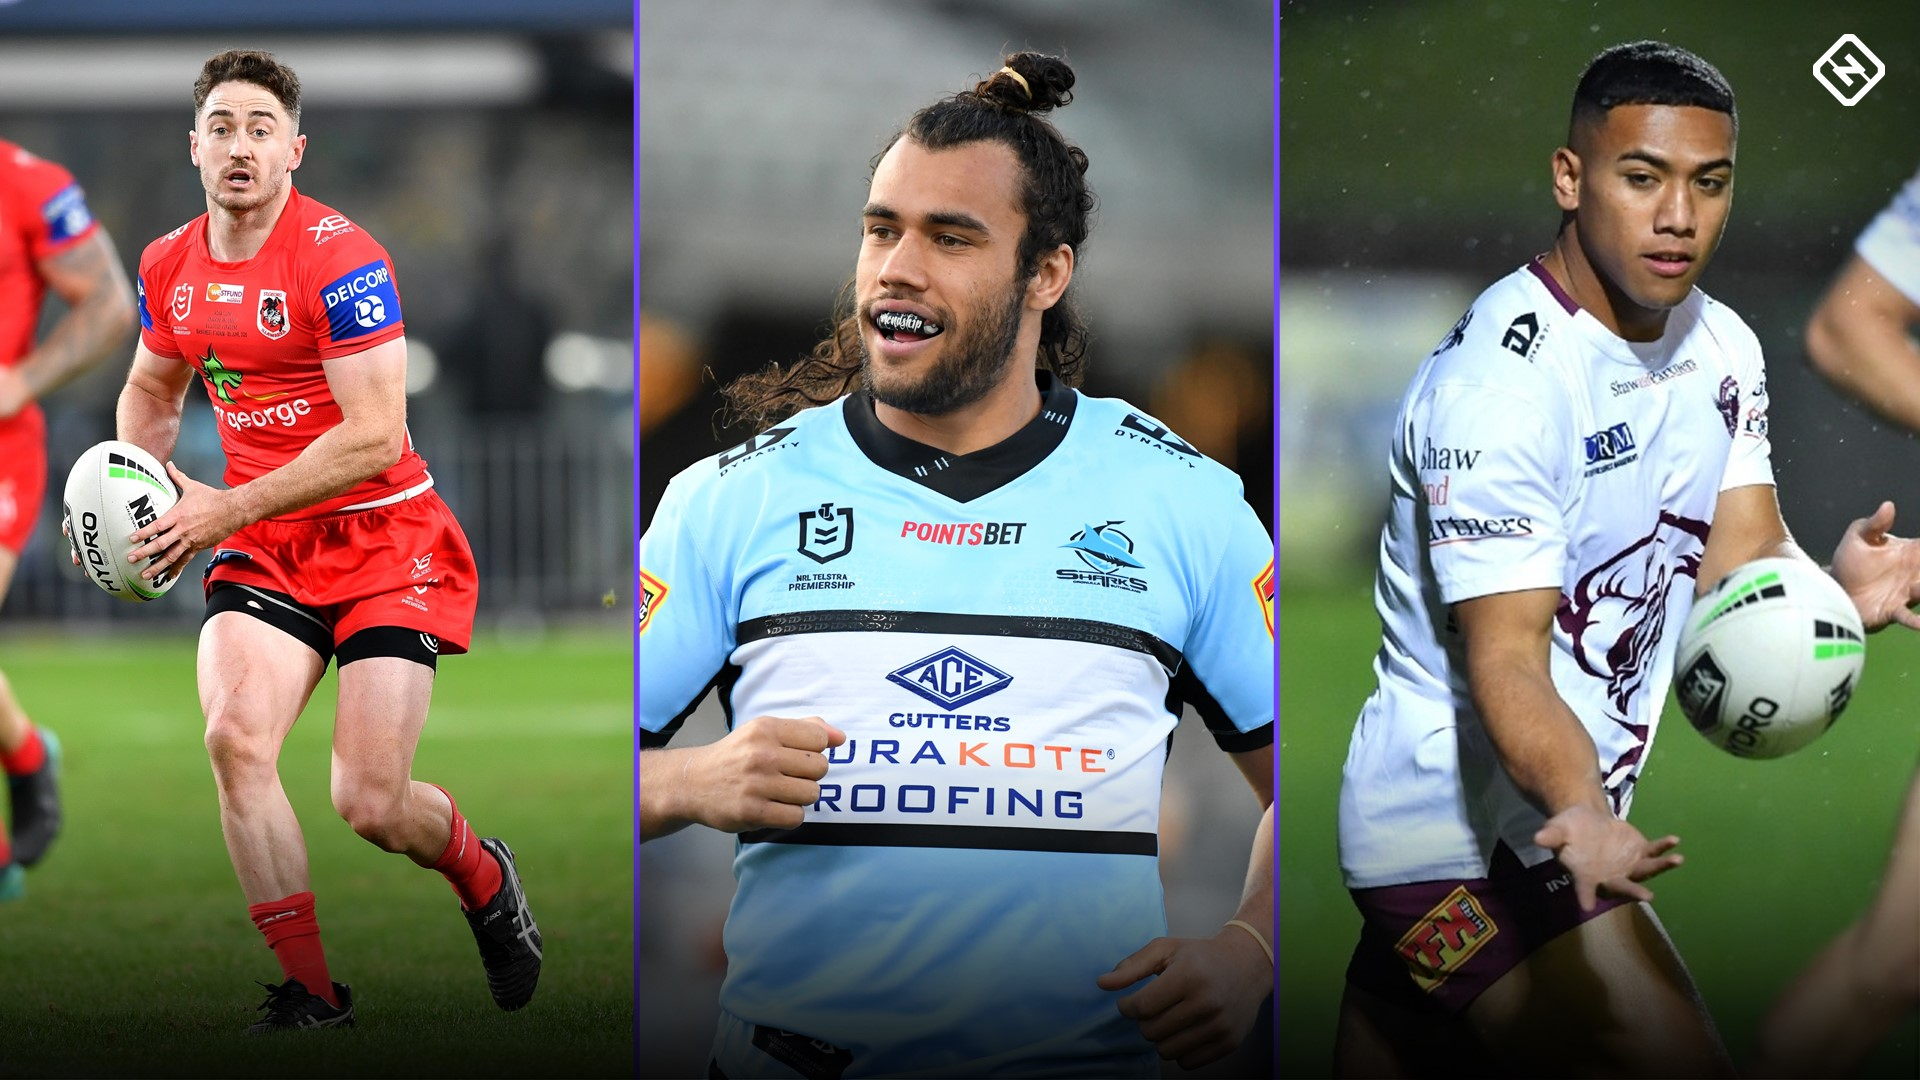 20 To Watch In 2020: Looking back at how each rookie NRL player fared